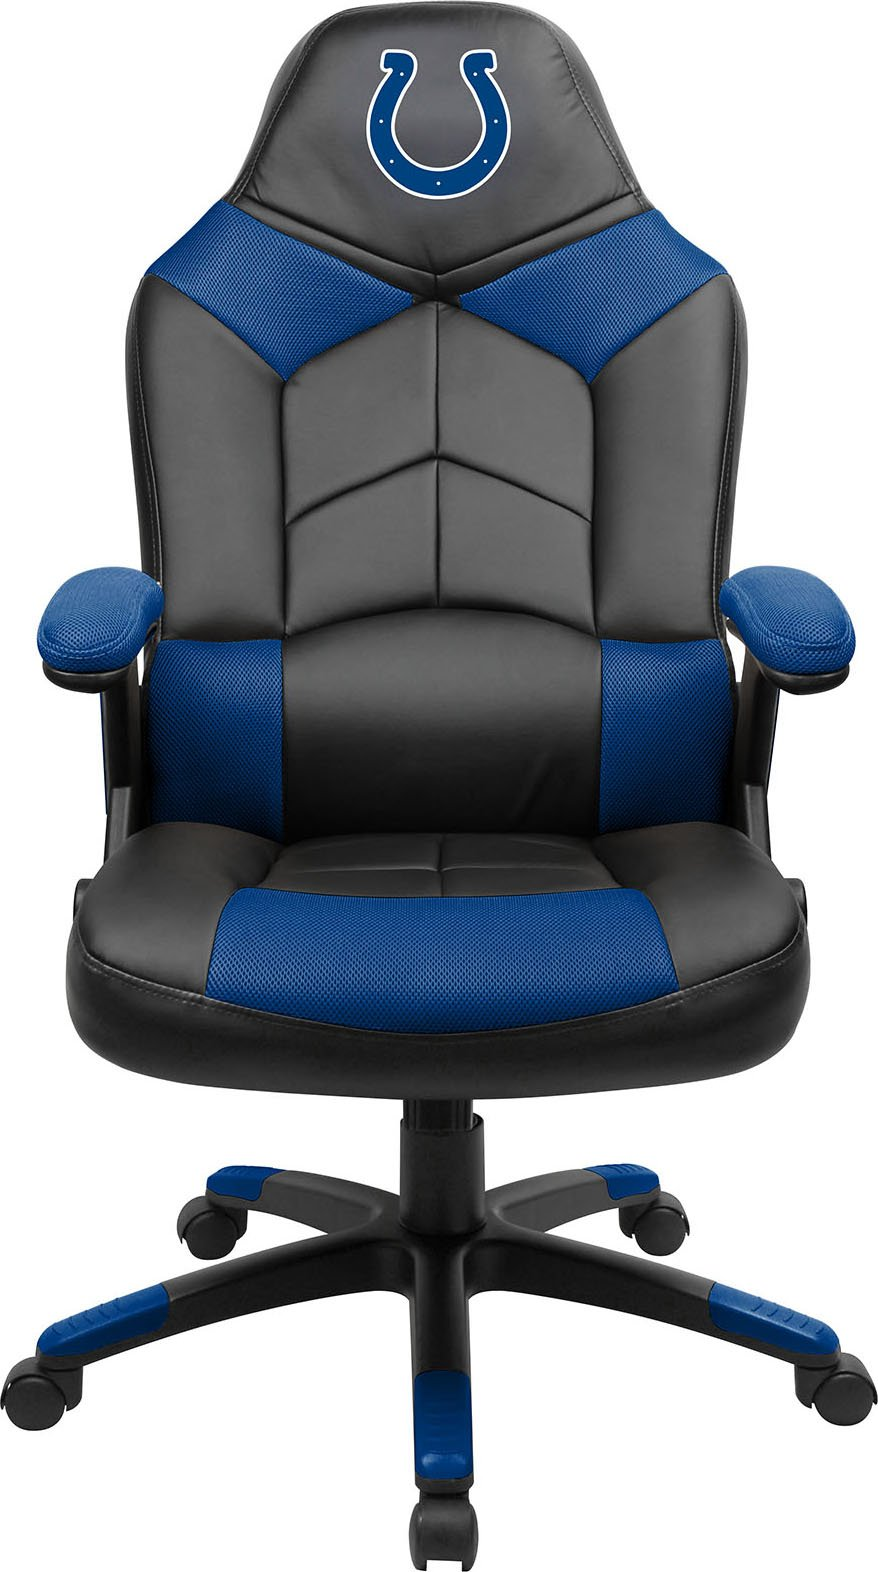 Imperial Officially Licensed NFL Furniture; Oversized Gaming Chairs, Indianapolis Colts